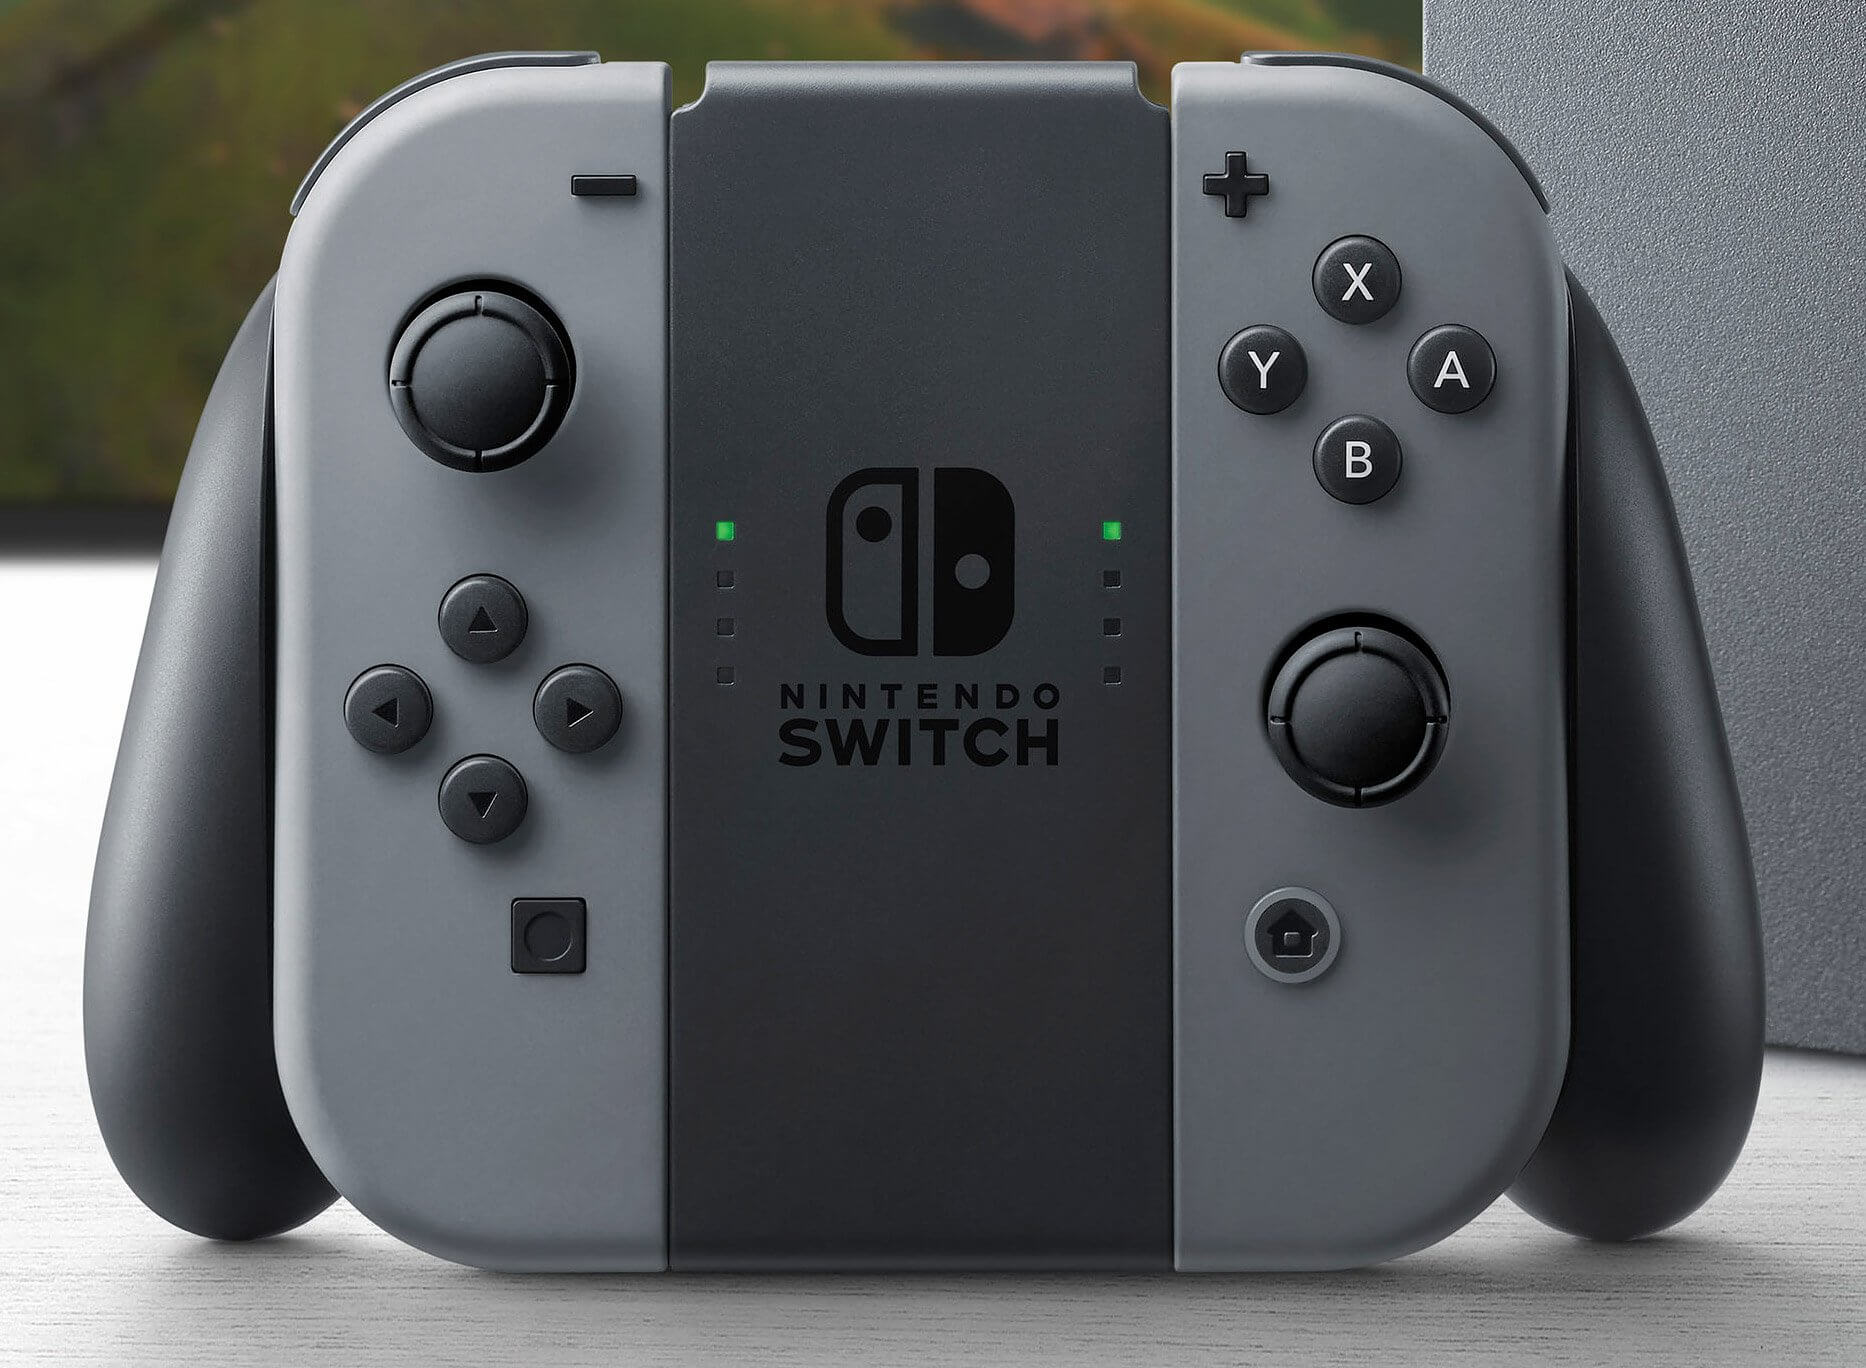 The Joy-Con controller for the Nintendo Switch.